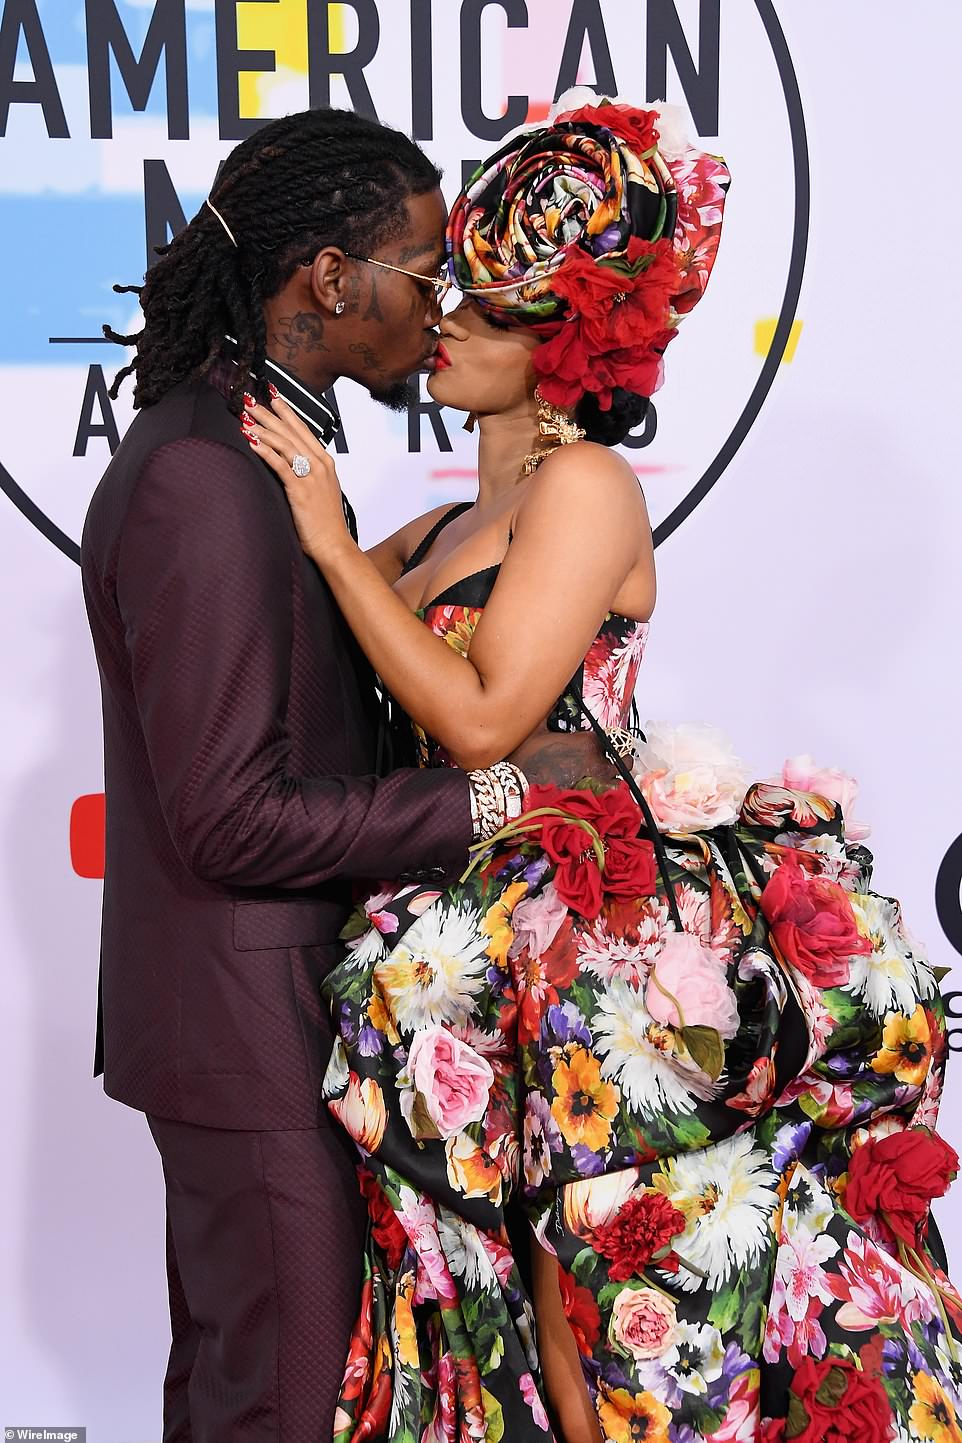 Cardi B and offset kiss at the American Music Awards 2018